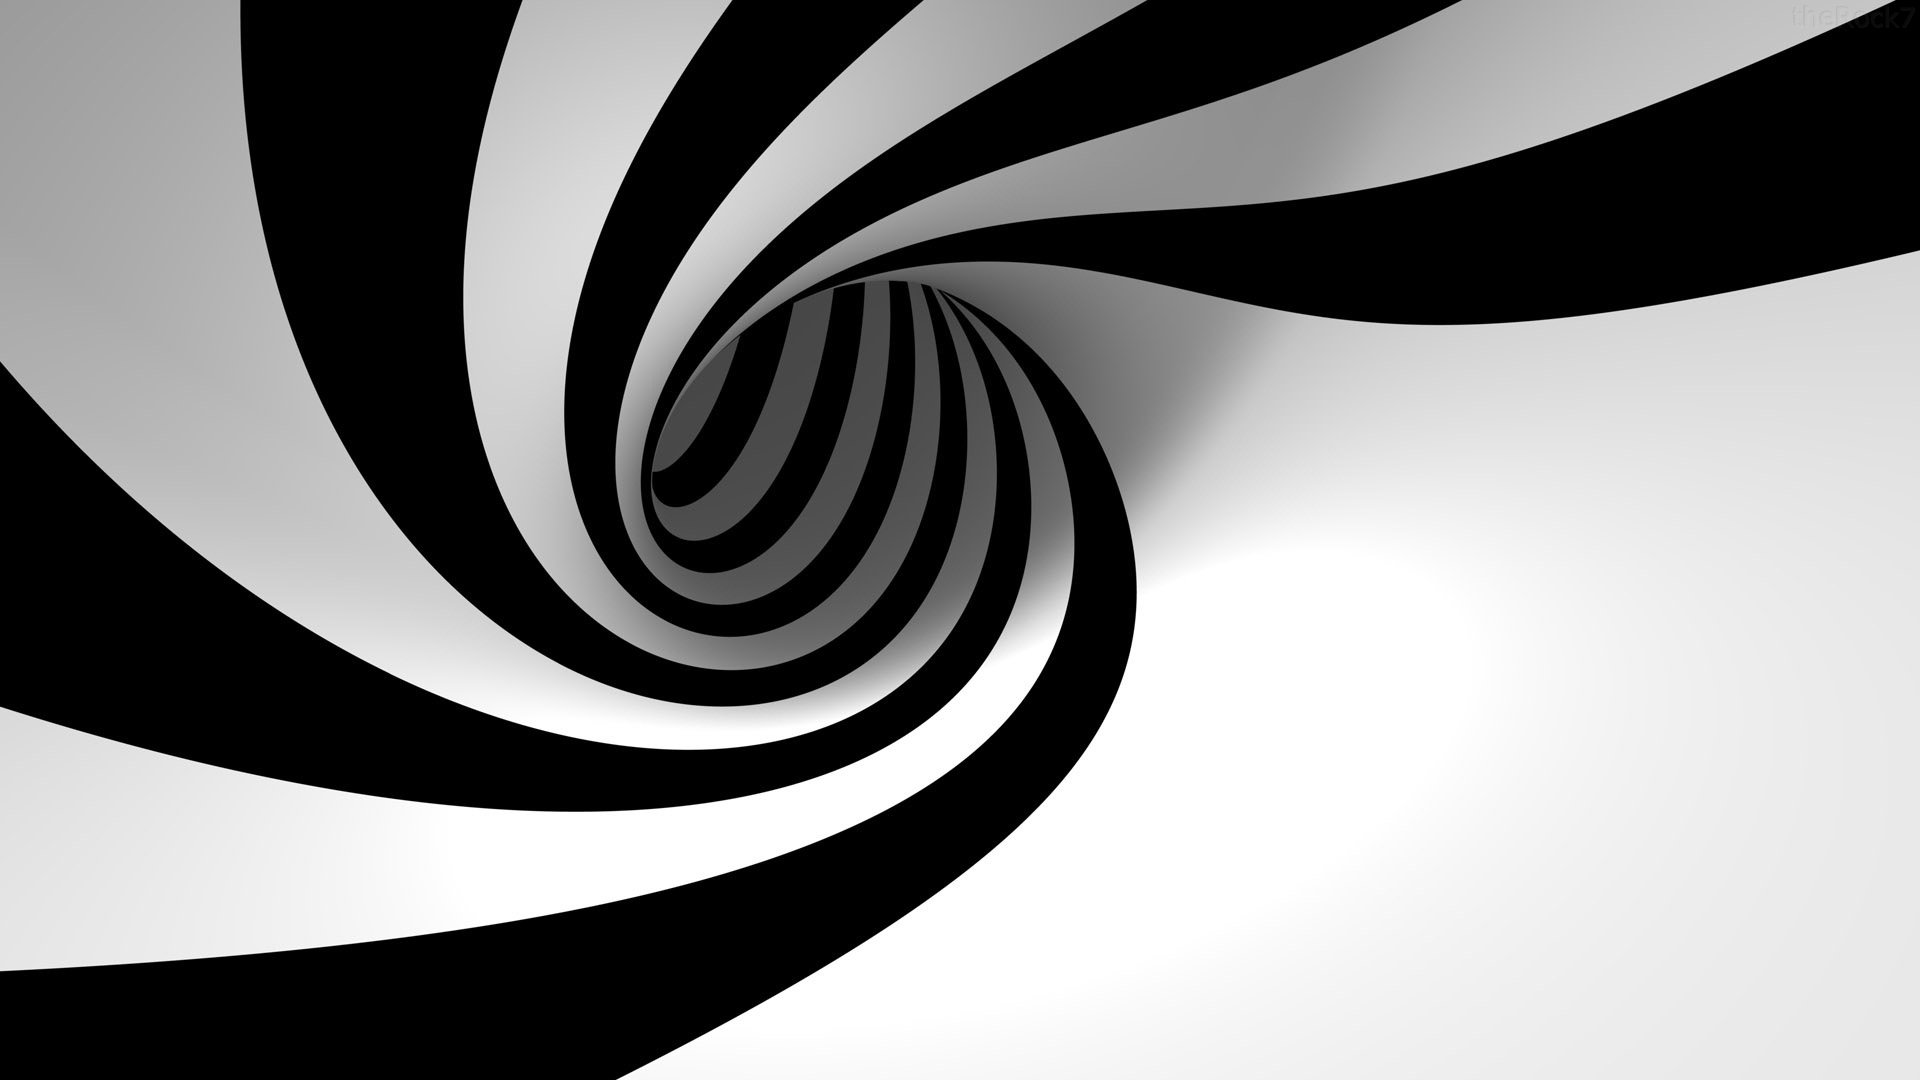 Download 3D Black White Spiral Wallpaper Wallpapers 1920x1080